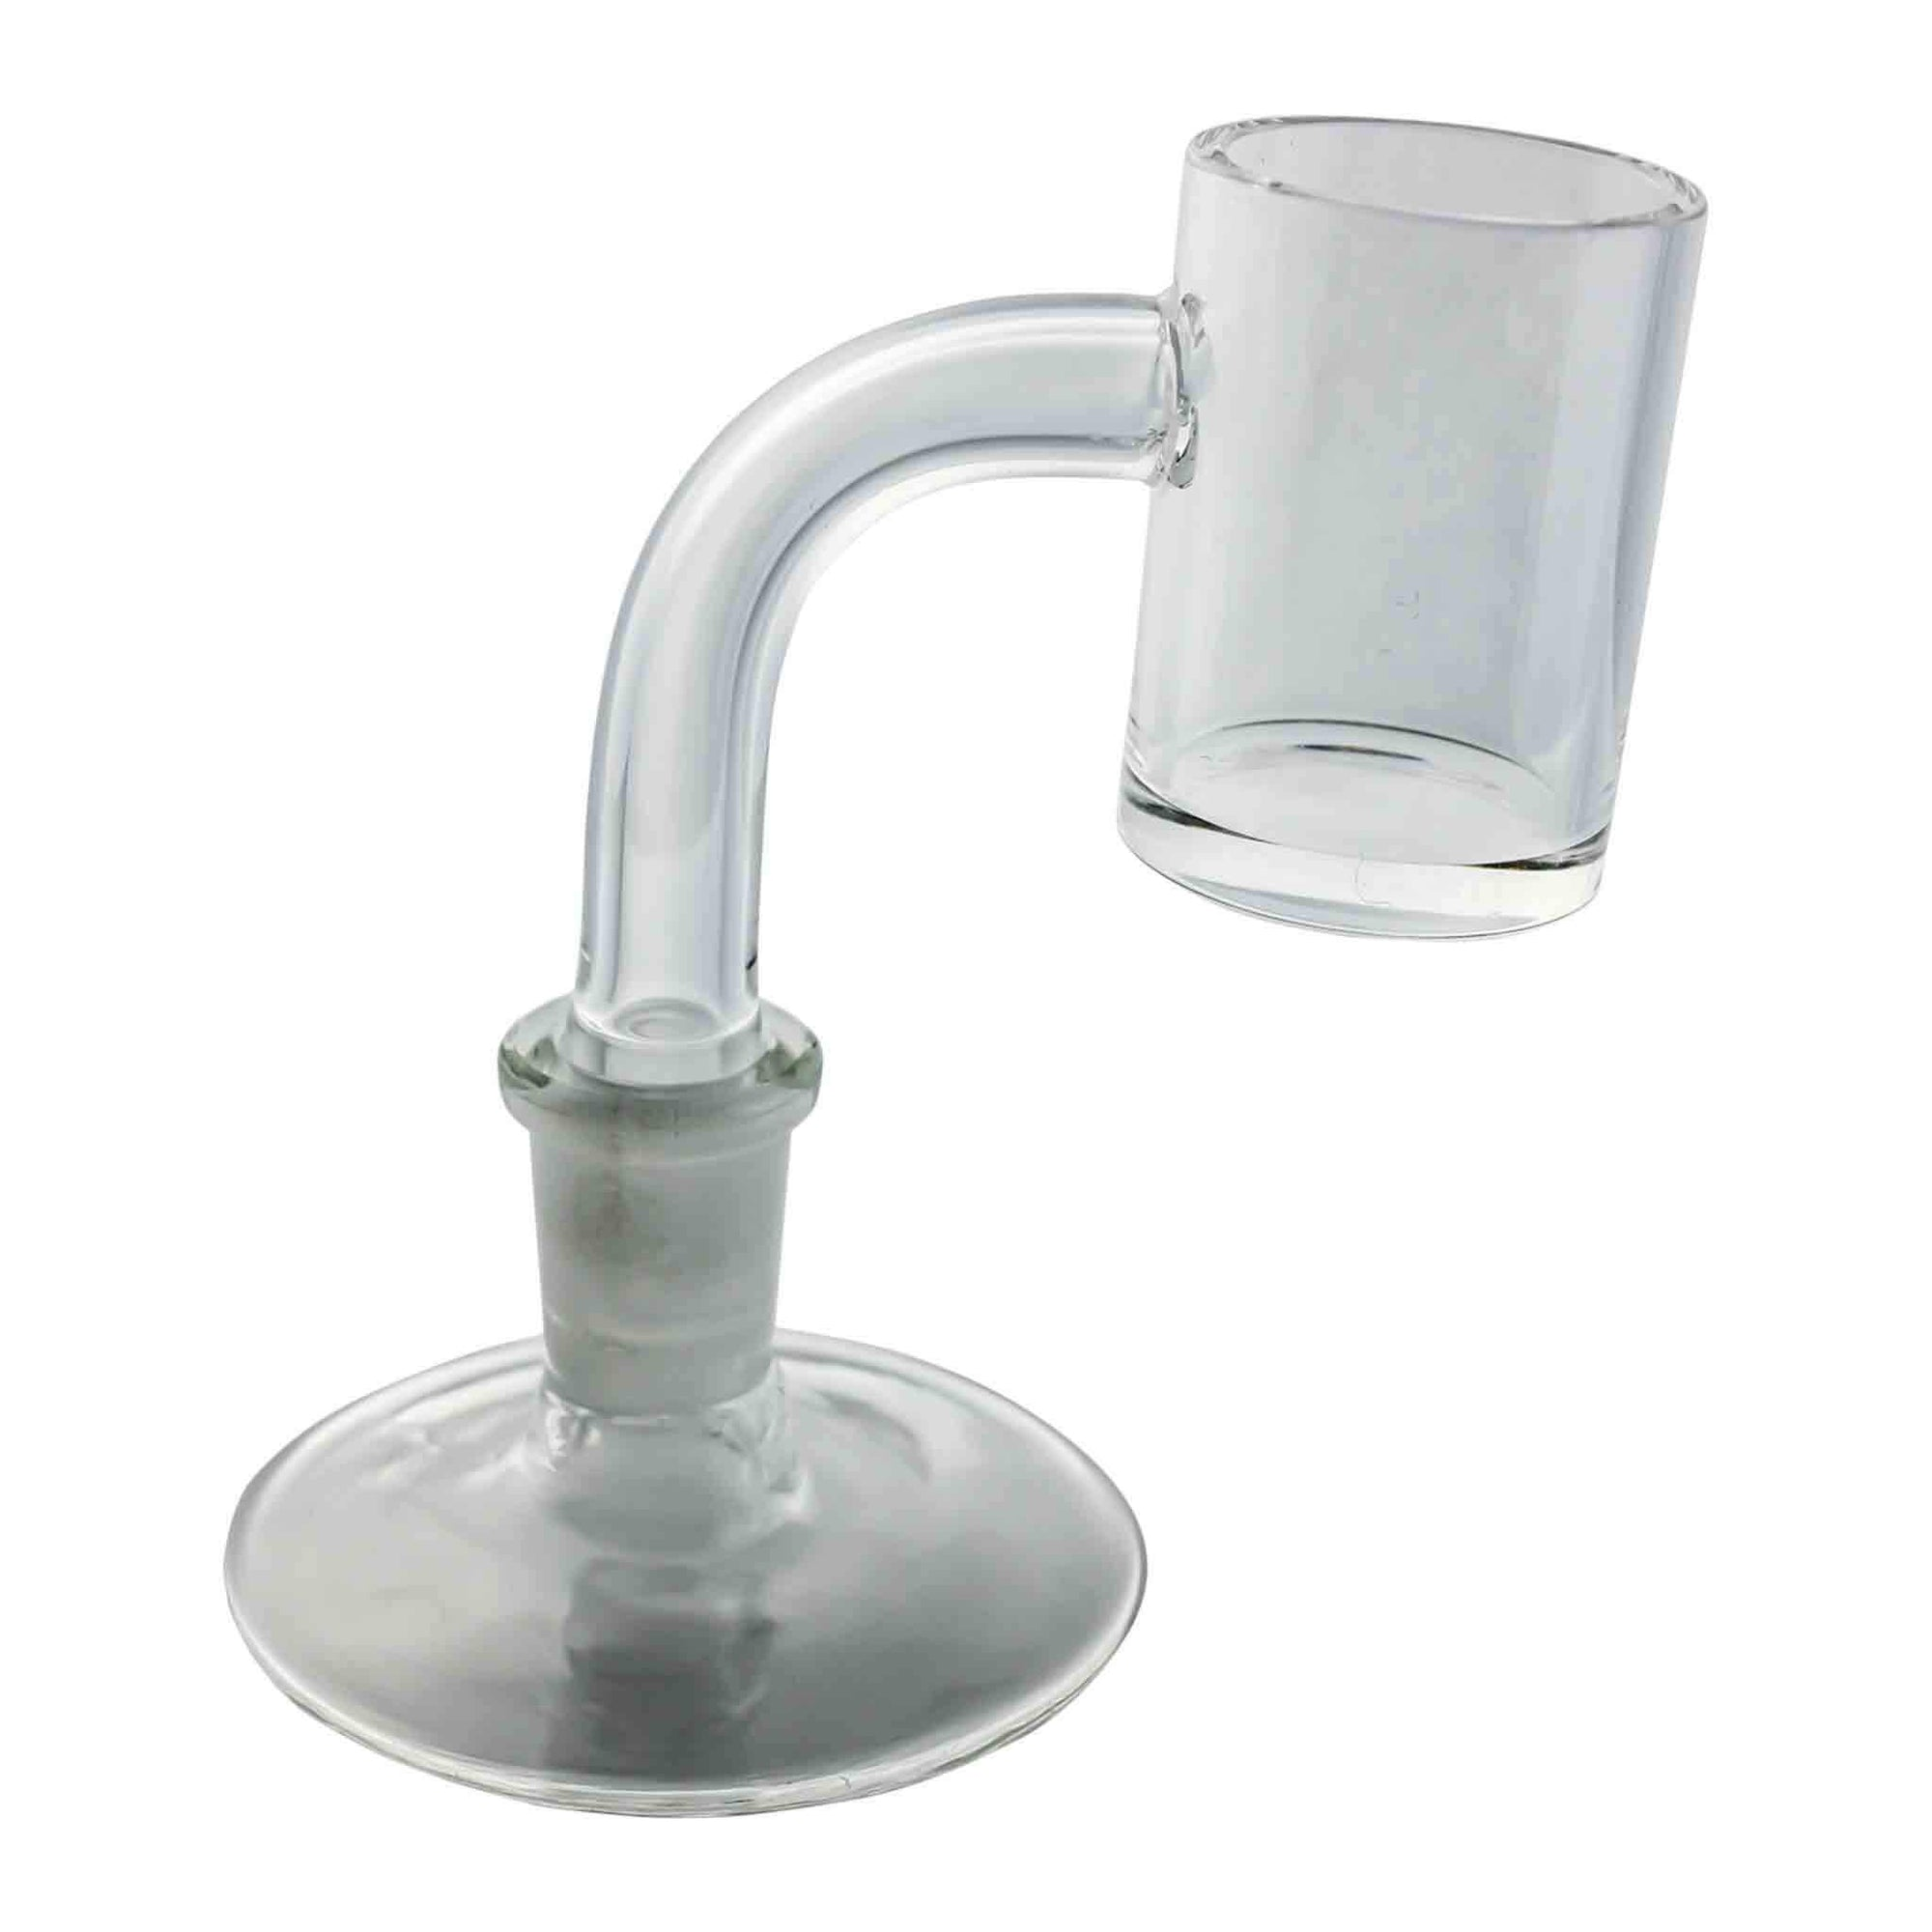 25mm Quartz Banger - Beveled Edge - Clear Bottom